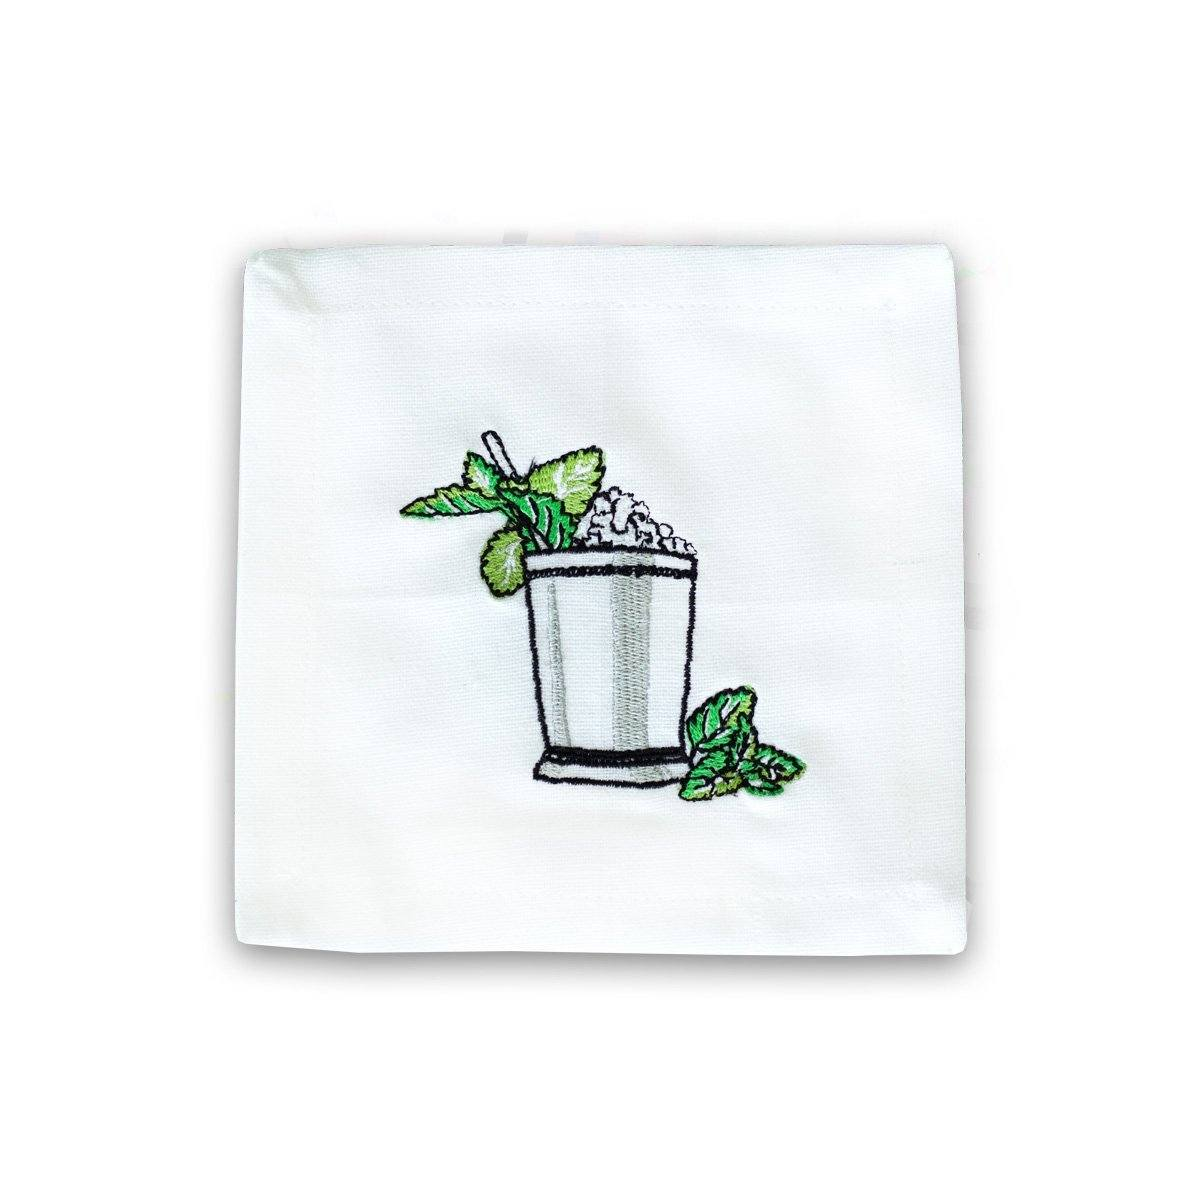 Mint Julep Embroidered Cocktail Napkin Set of 6